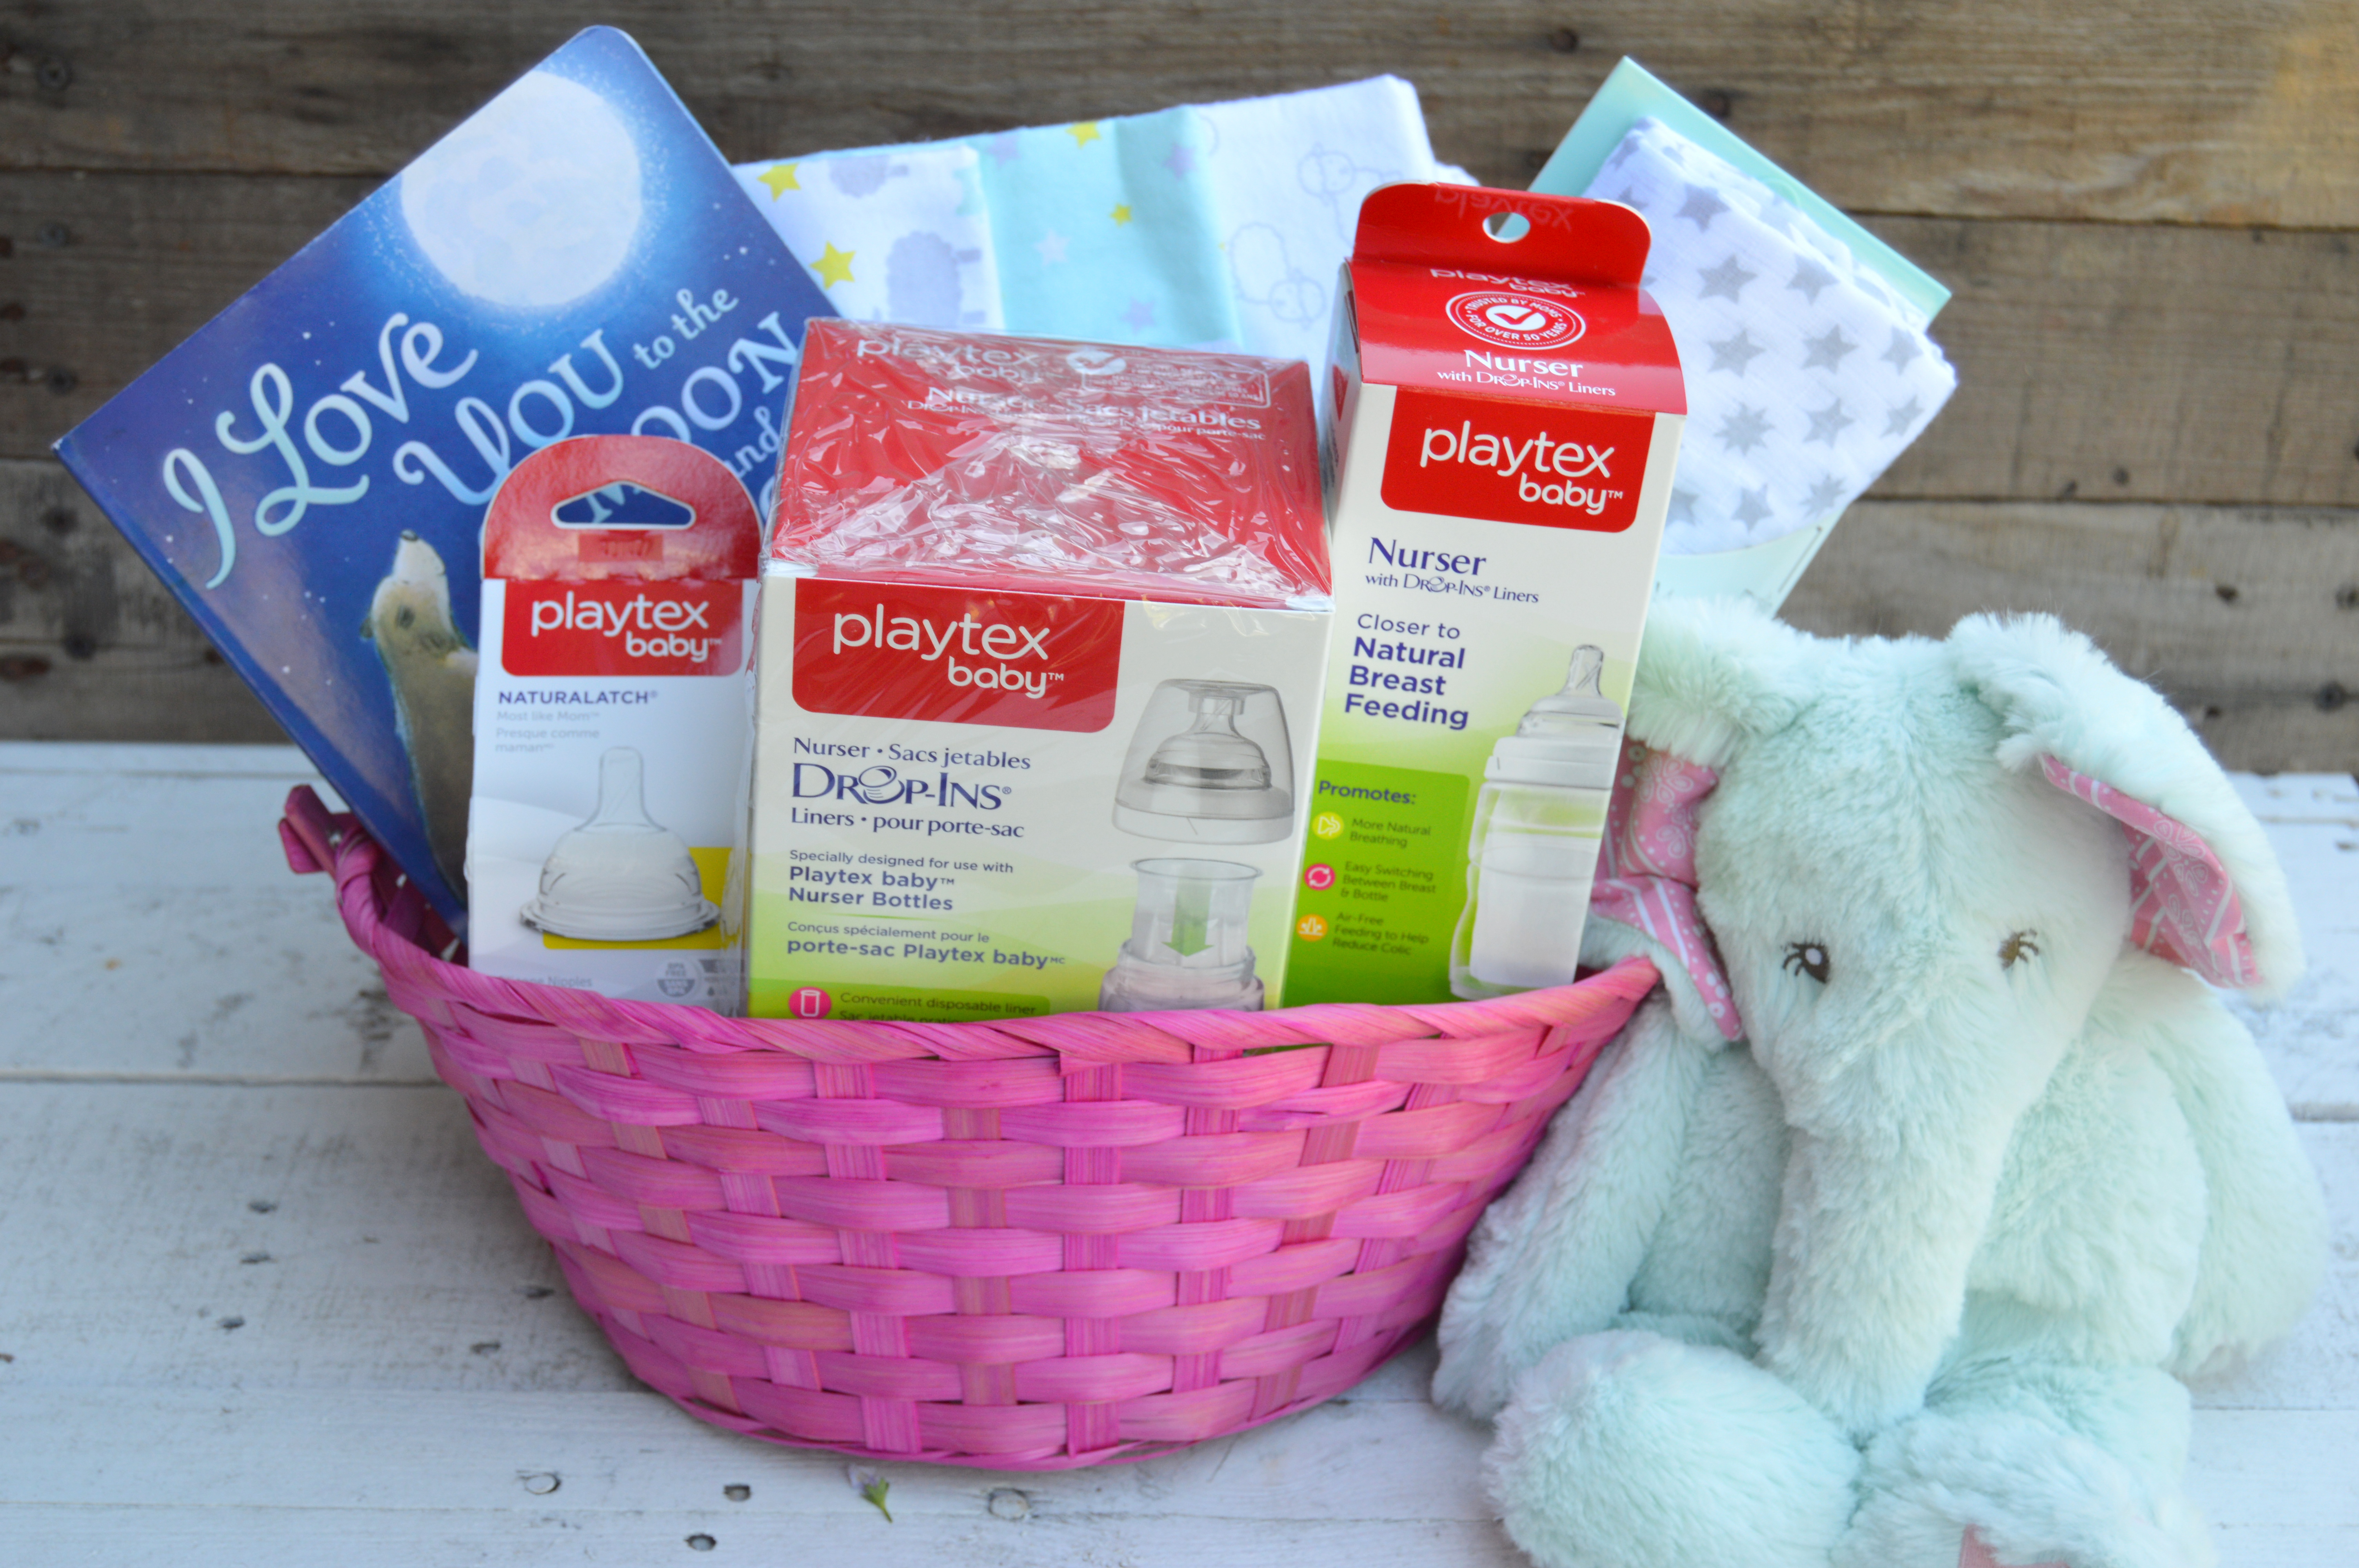 Baby shower gift basket my big fat happy life my favorite items for a baby shower gift basket for new moms betterbottles ad negle Images